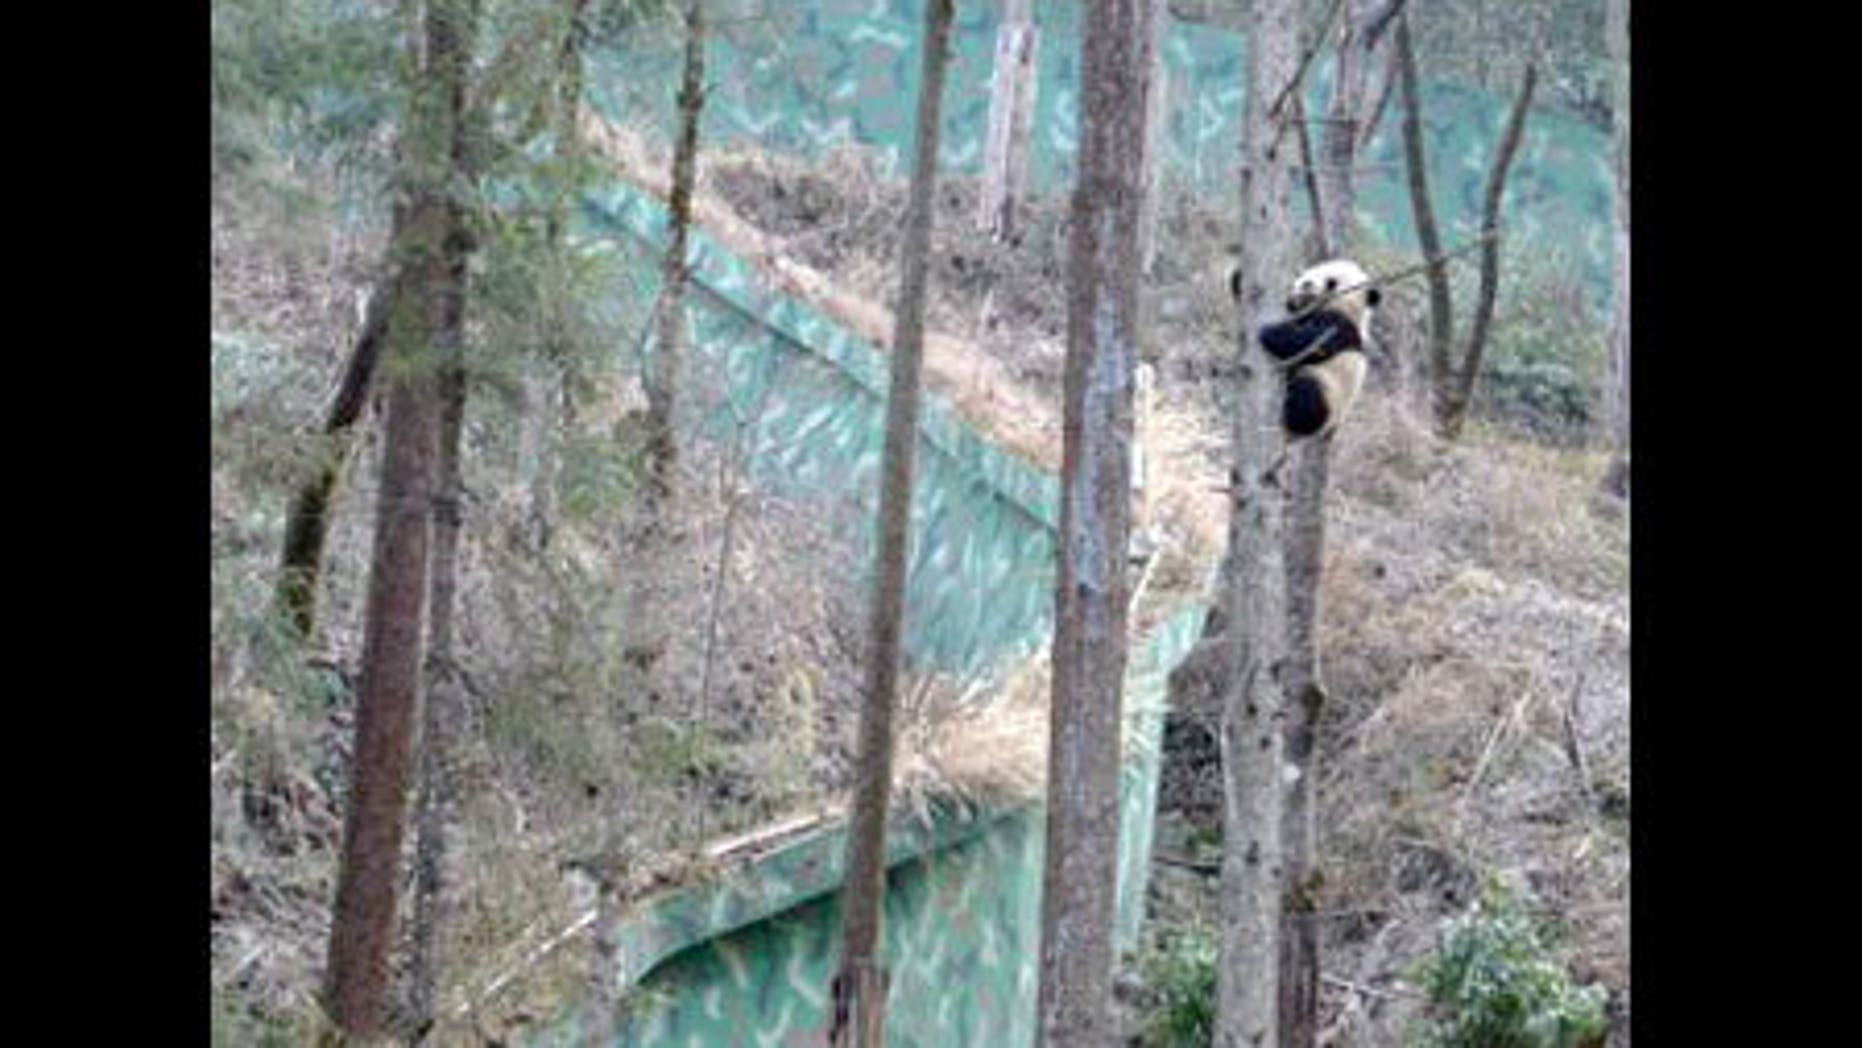 In Wolong in the mountains of China, baby pandas are off limits to all but the people who monitor and care for the animals. The pandas are raised in expansive enclosures, filled with trees, bamboo and steep slopes that mimic prime panda real es